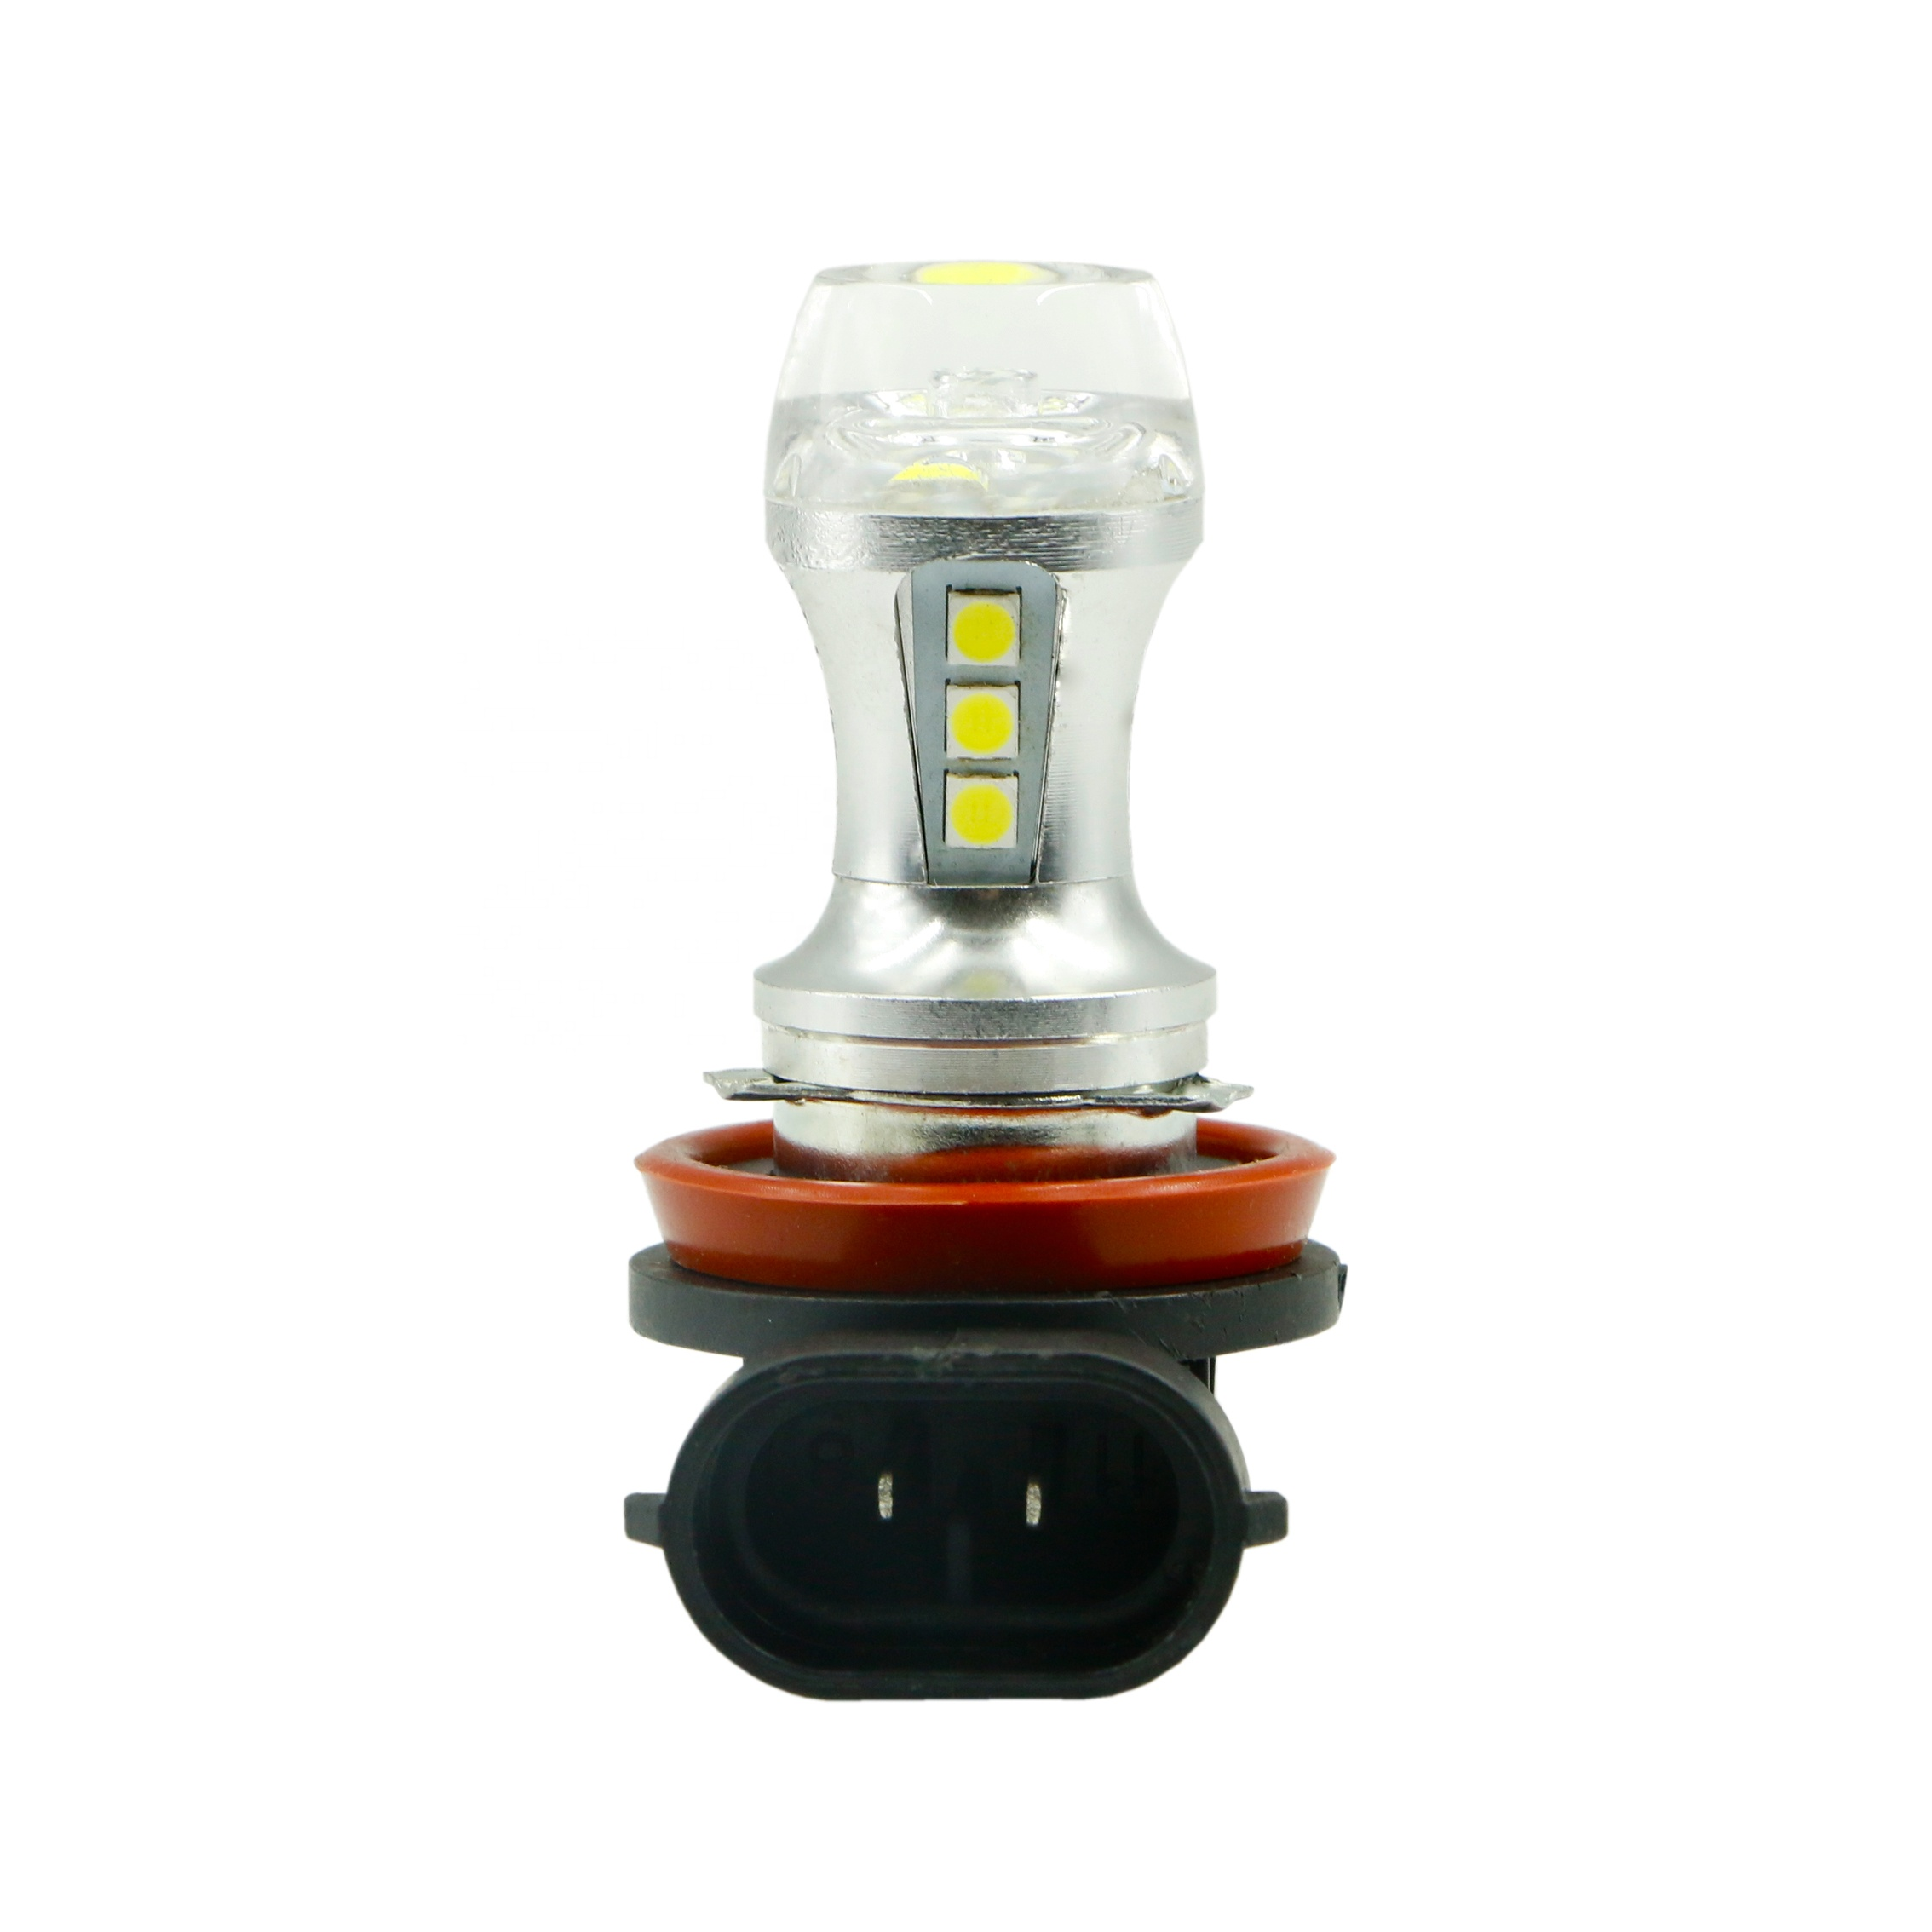 H4 H7 9005 Car <strong>led</strong> headlight <strong>fog</strong> head light lamps bulb H1 H3 H8 H9 <strong>H10</strong> H11 9005 9006 <strong>Auto</strong> <strong>led</strong>